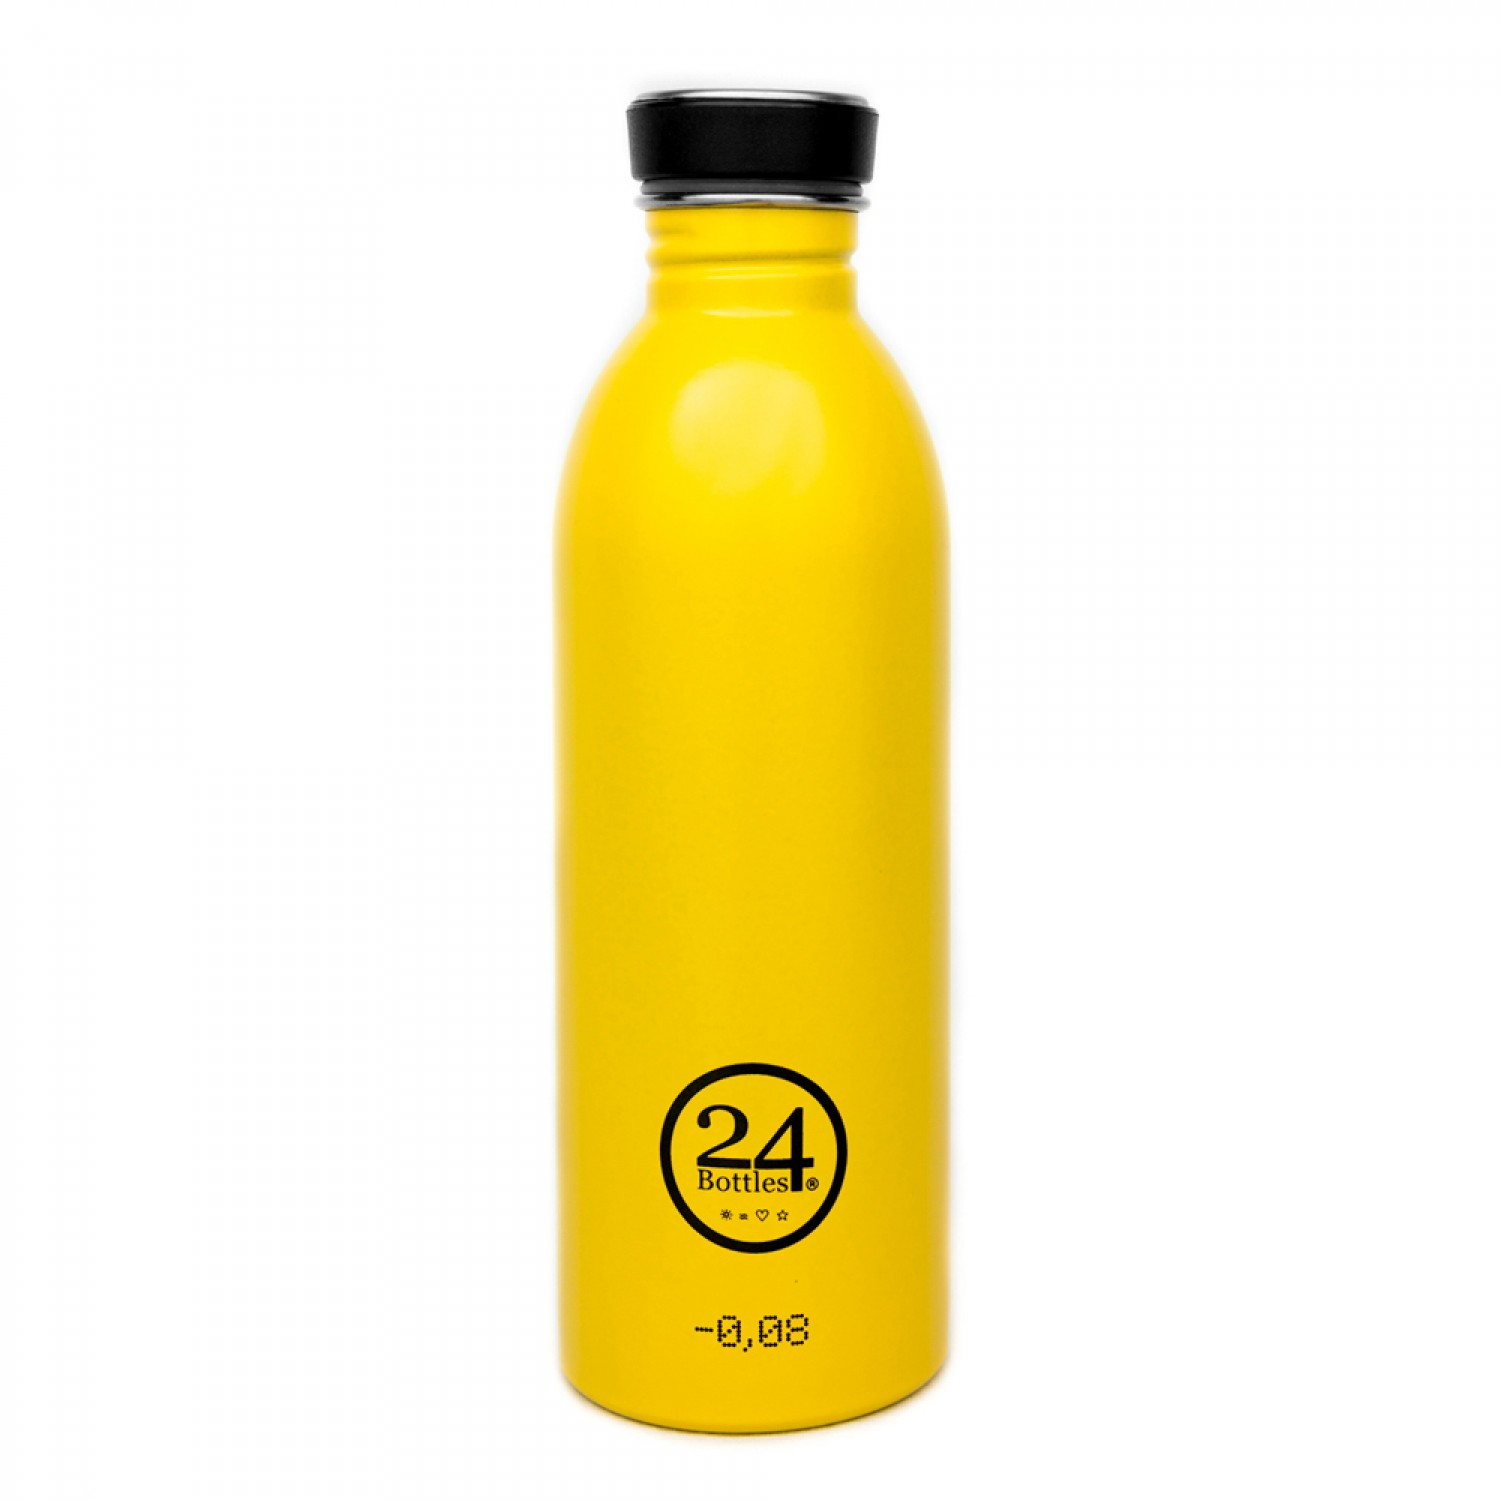 Edelstahl Trinkflasche 0,5L taxi yellow | 24Bottles